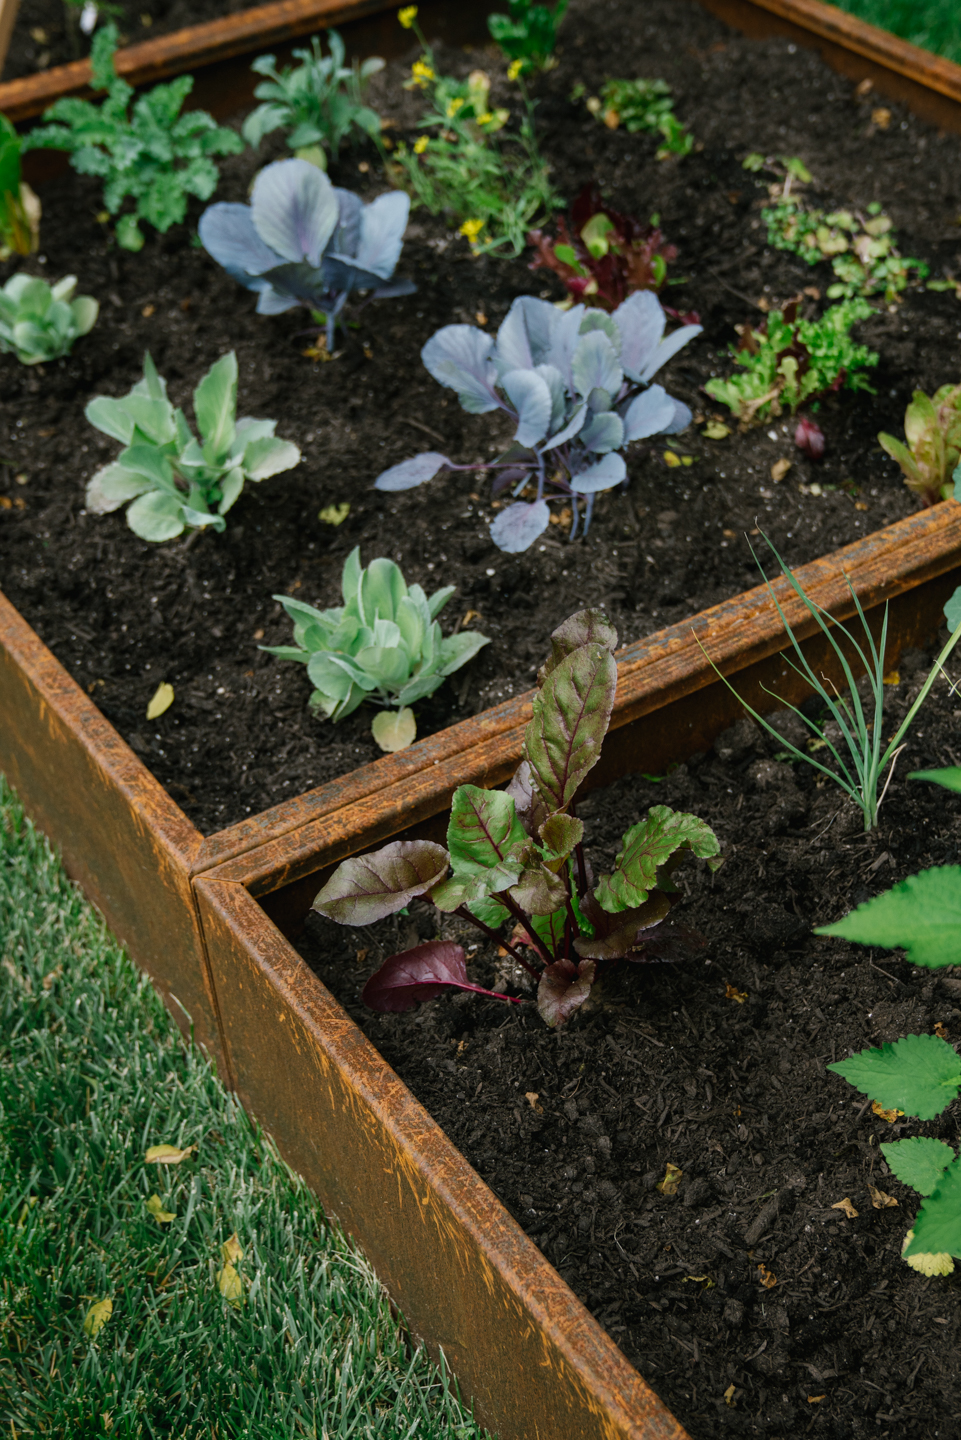 Corten Steel: A longer lasting, more modern alternative to wood raised gardening beds